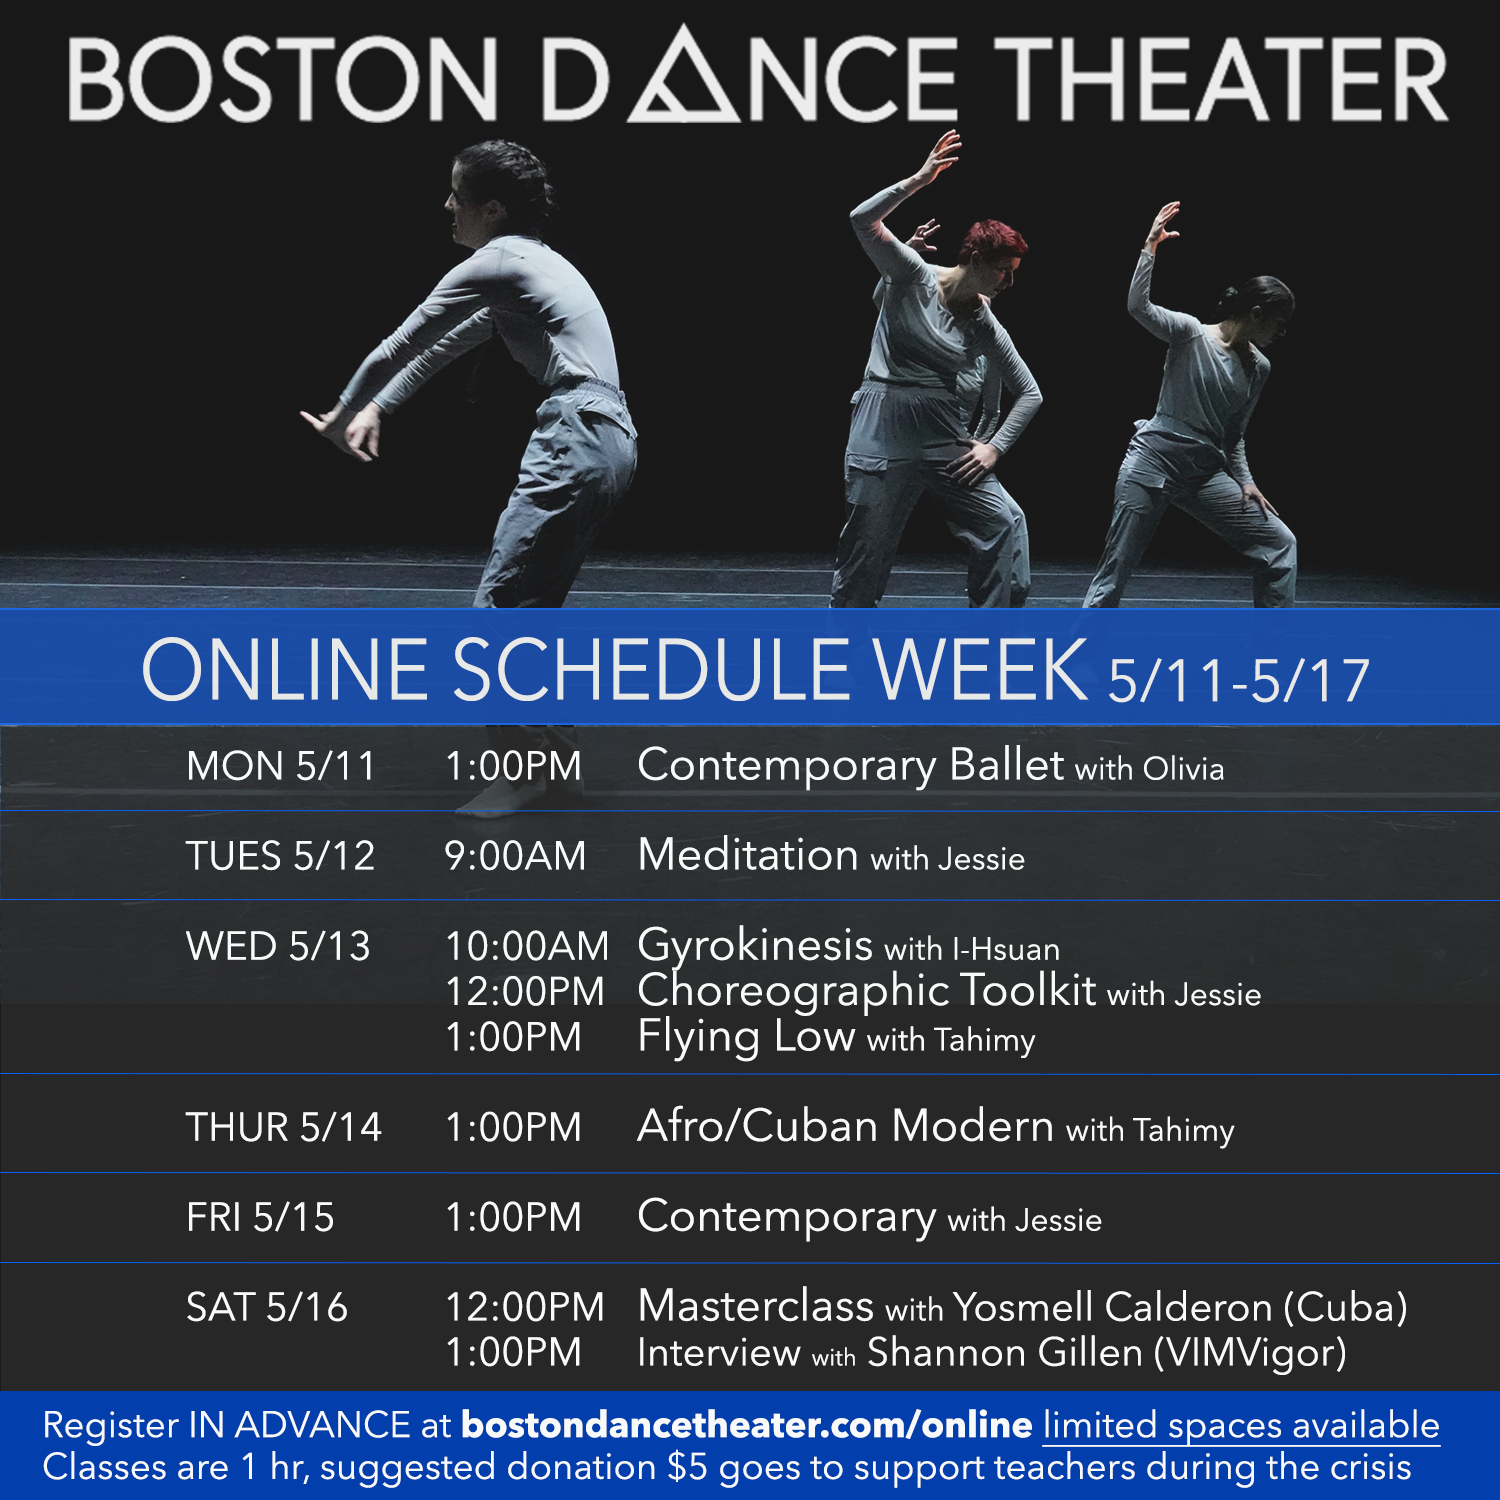 Contemporary with Jessie, Boston Dance Theater